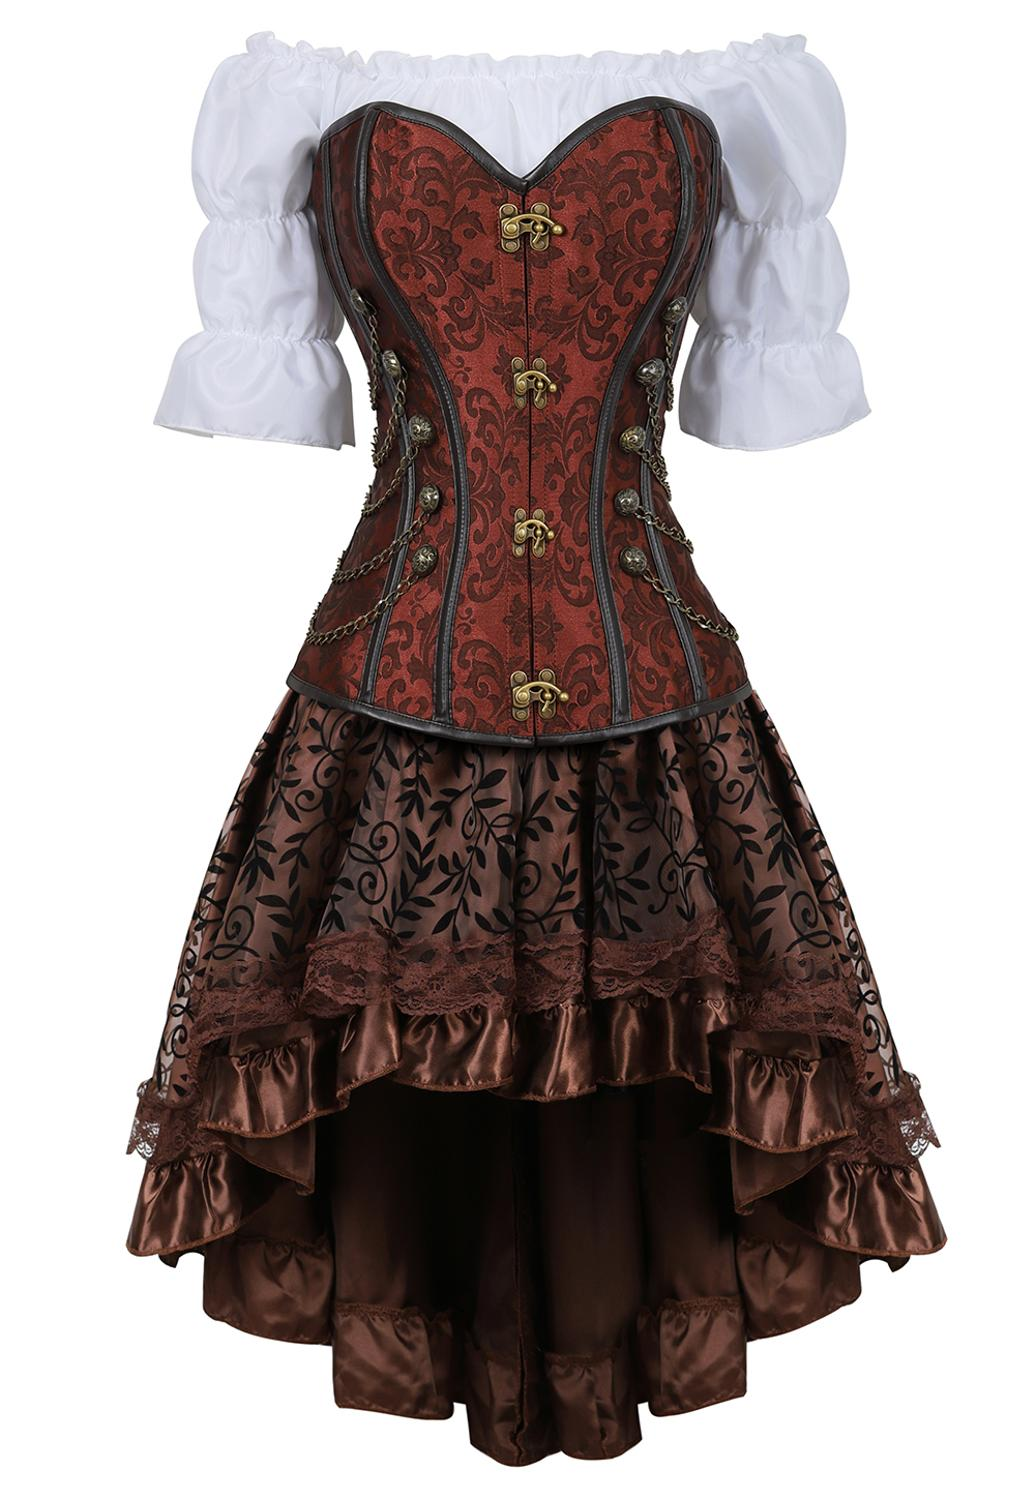 corset skirt 3 piece leather dress bustiers corset steampunk pirate lingerie corsetto irregular burlesque plus size black brown